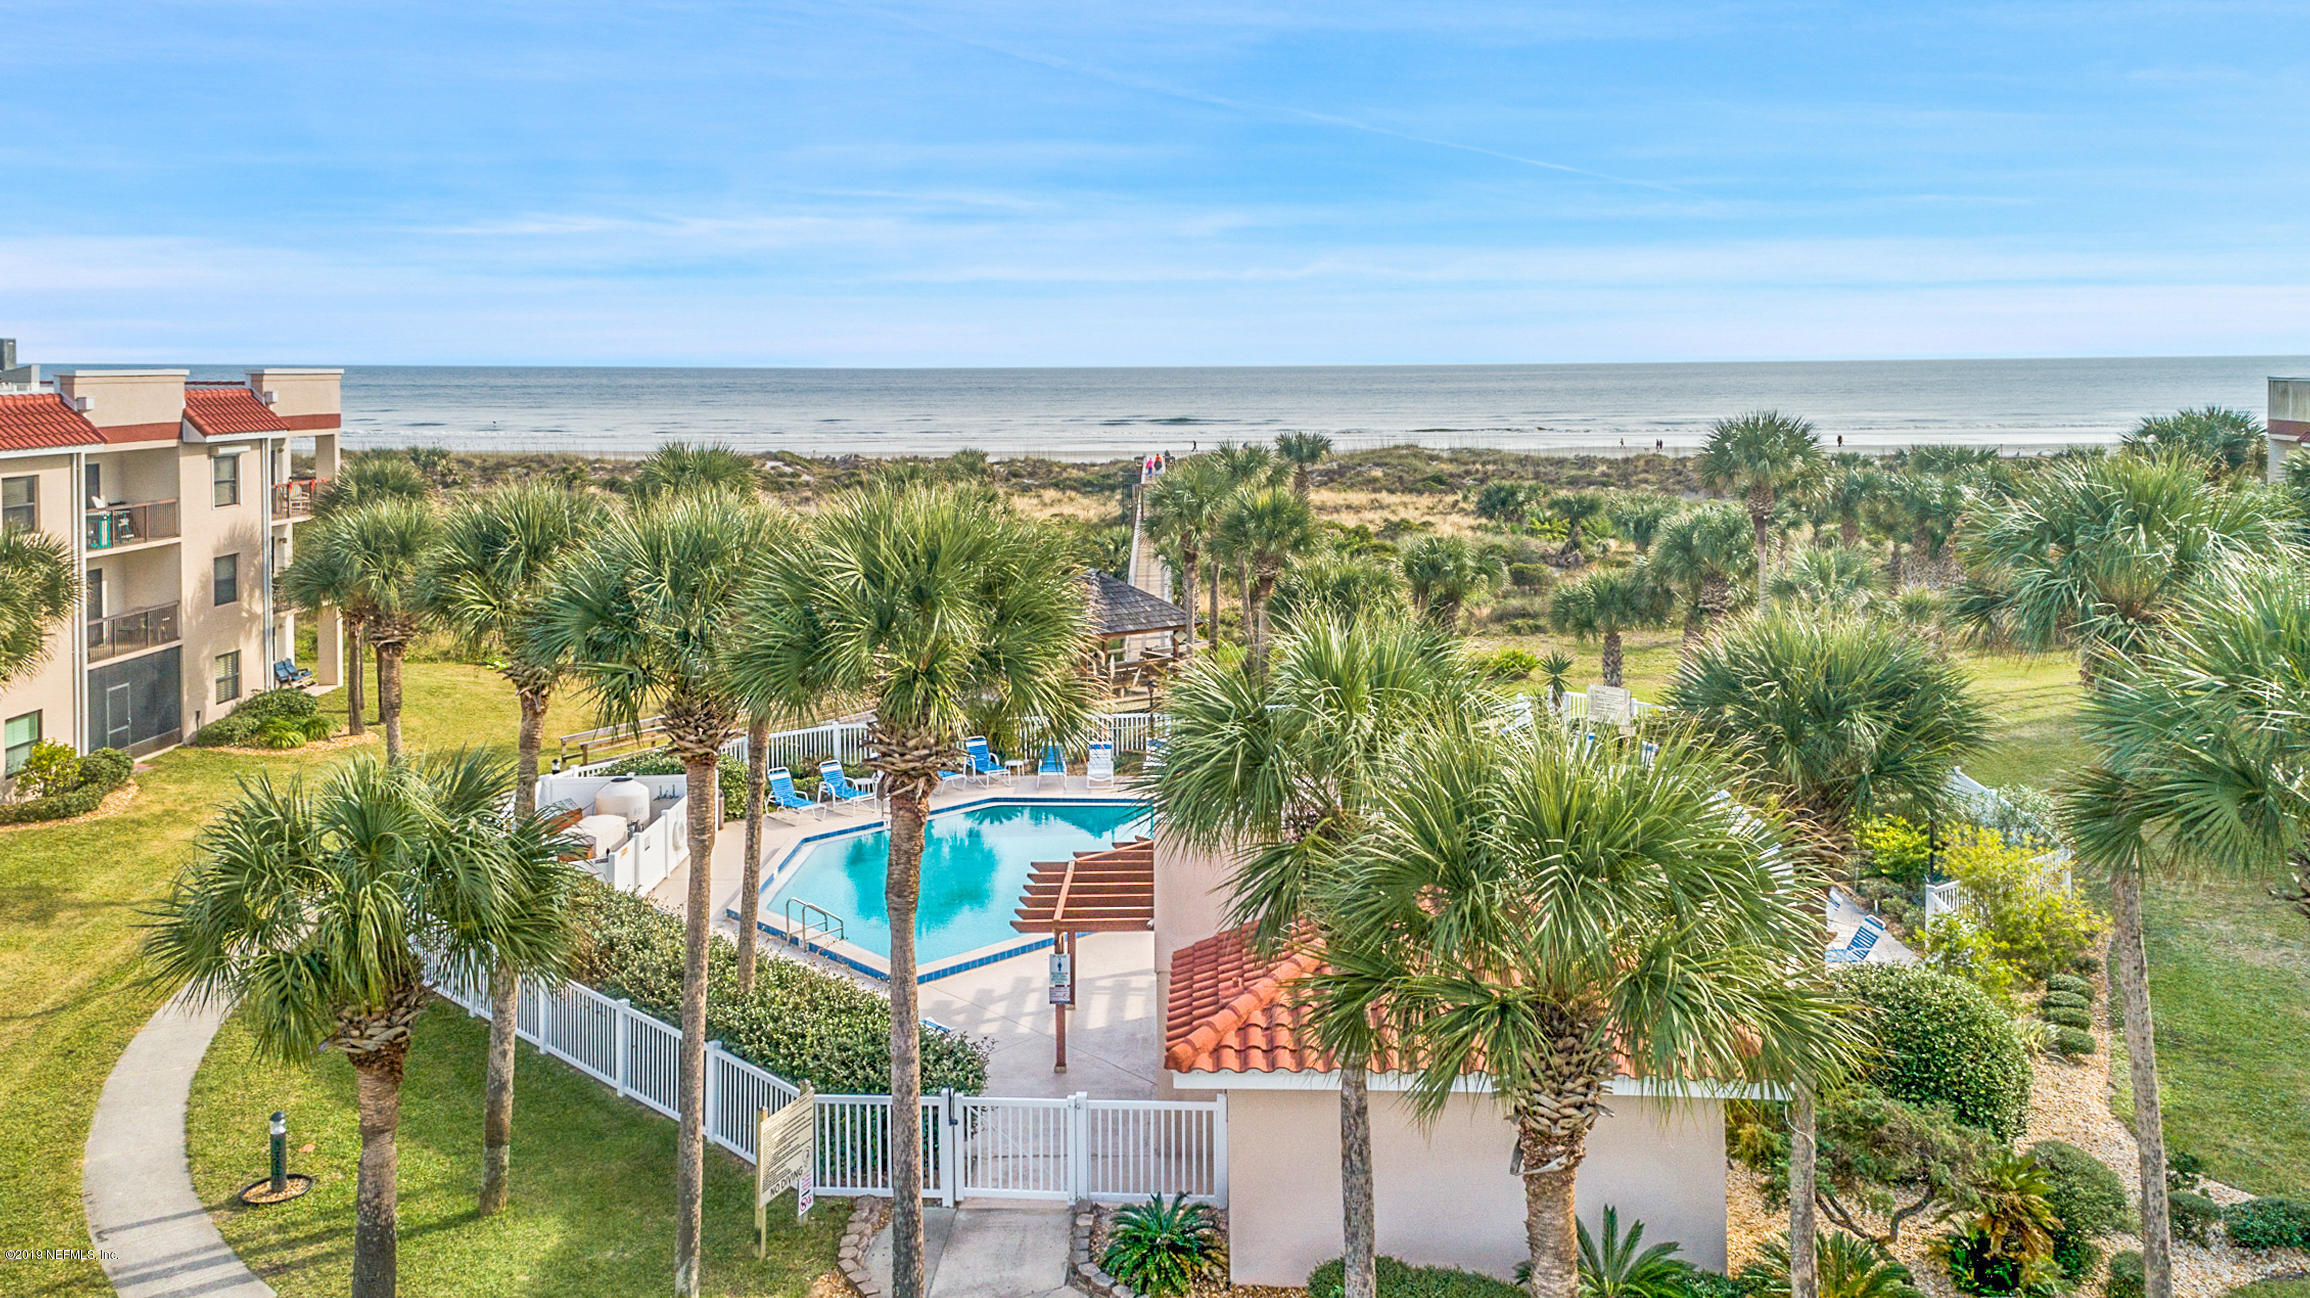 4250 A1A, ST AUGUSTINE, FLORIDA 32080, 2 Bedrooms Bedrooms, ,2 BathroomsBathrooms,Residential - condos/townhomes,For sale,A1A,972525